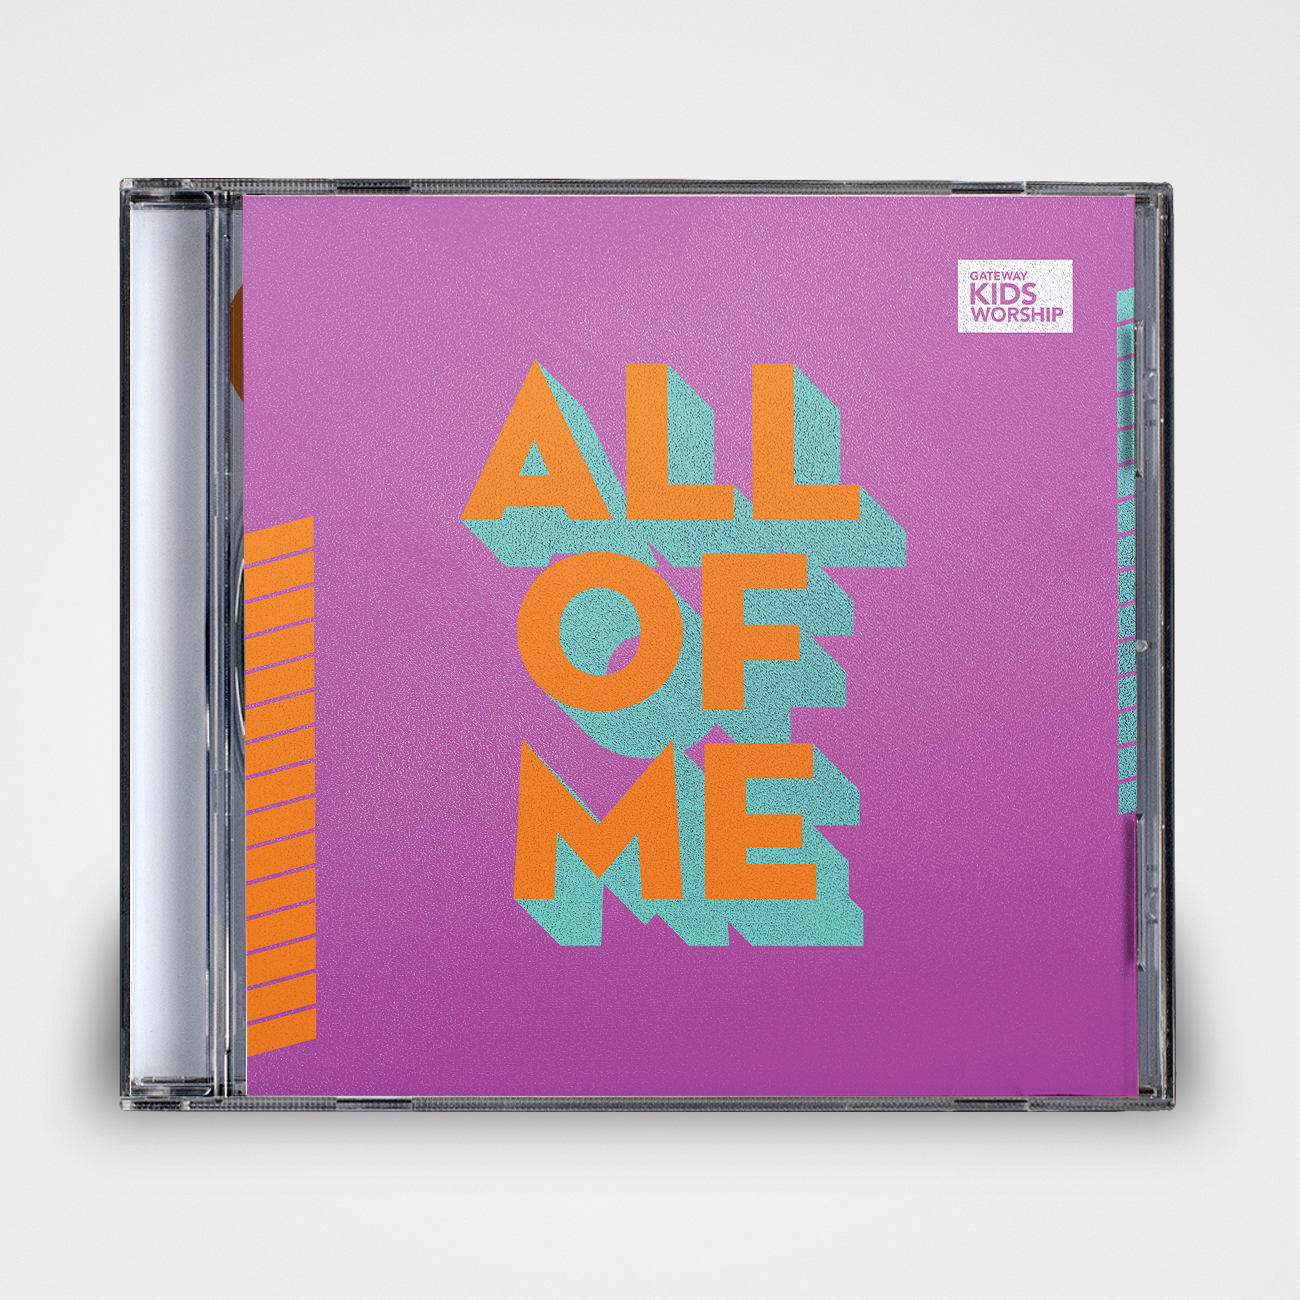 Gateway Kids -  All of Me CD/DVD